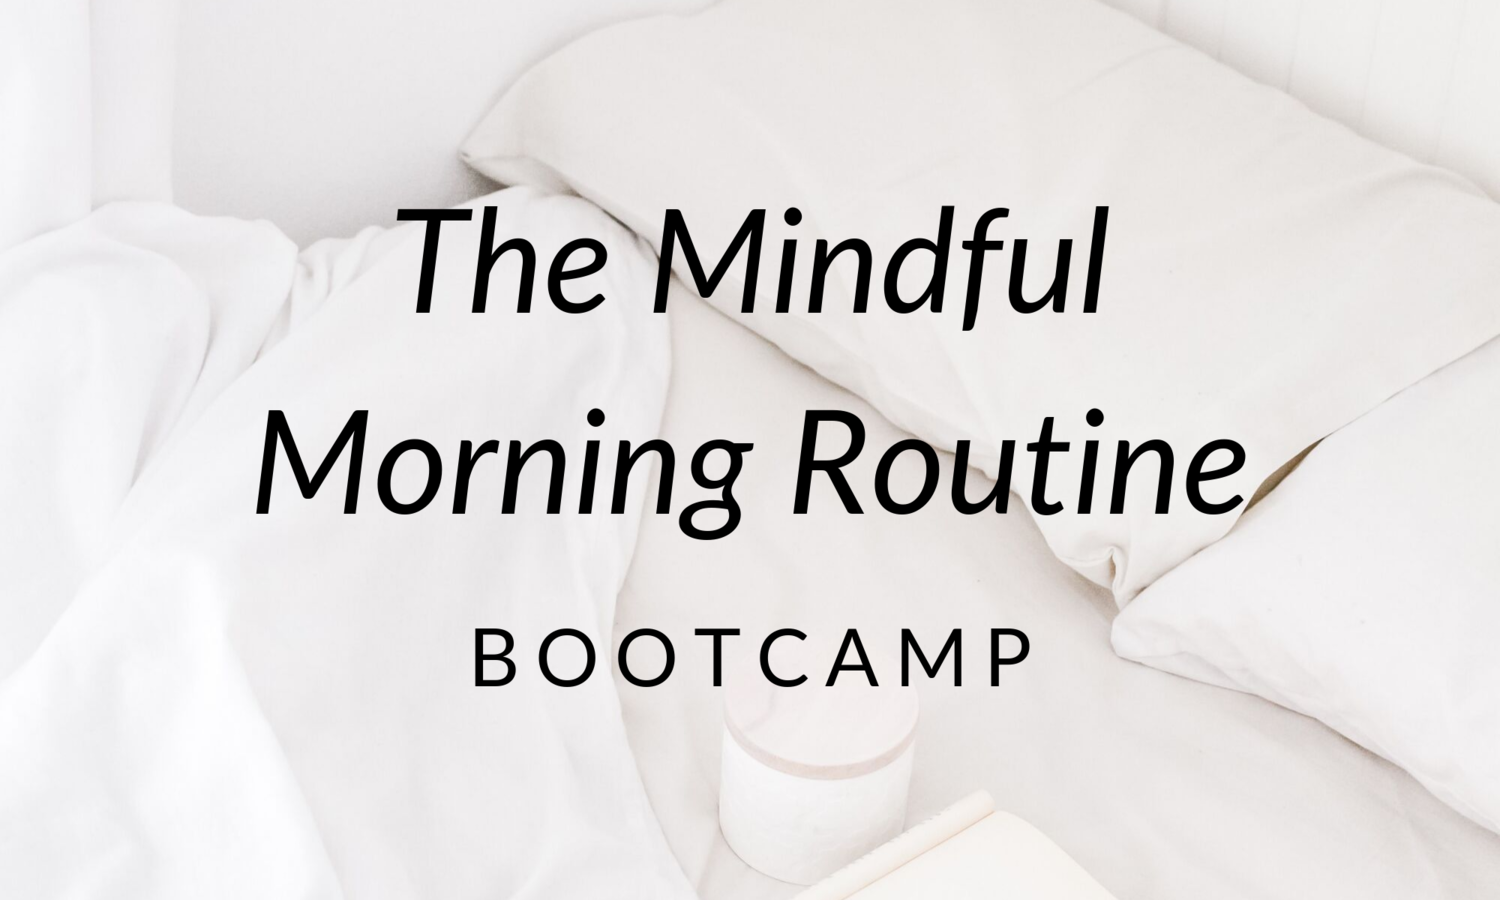 The Mindful Morning Routine Bootcamp BANNER.png